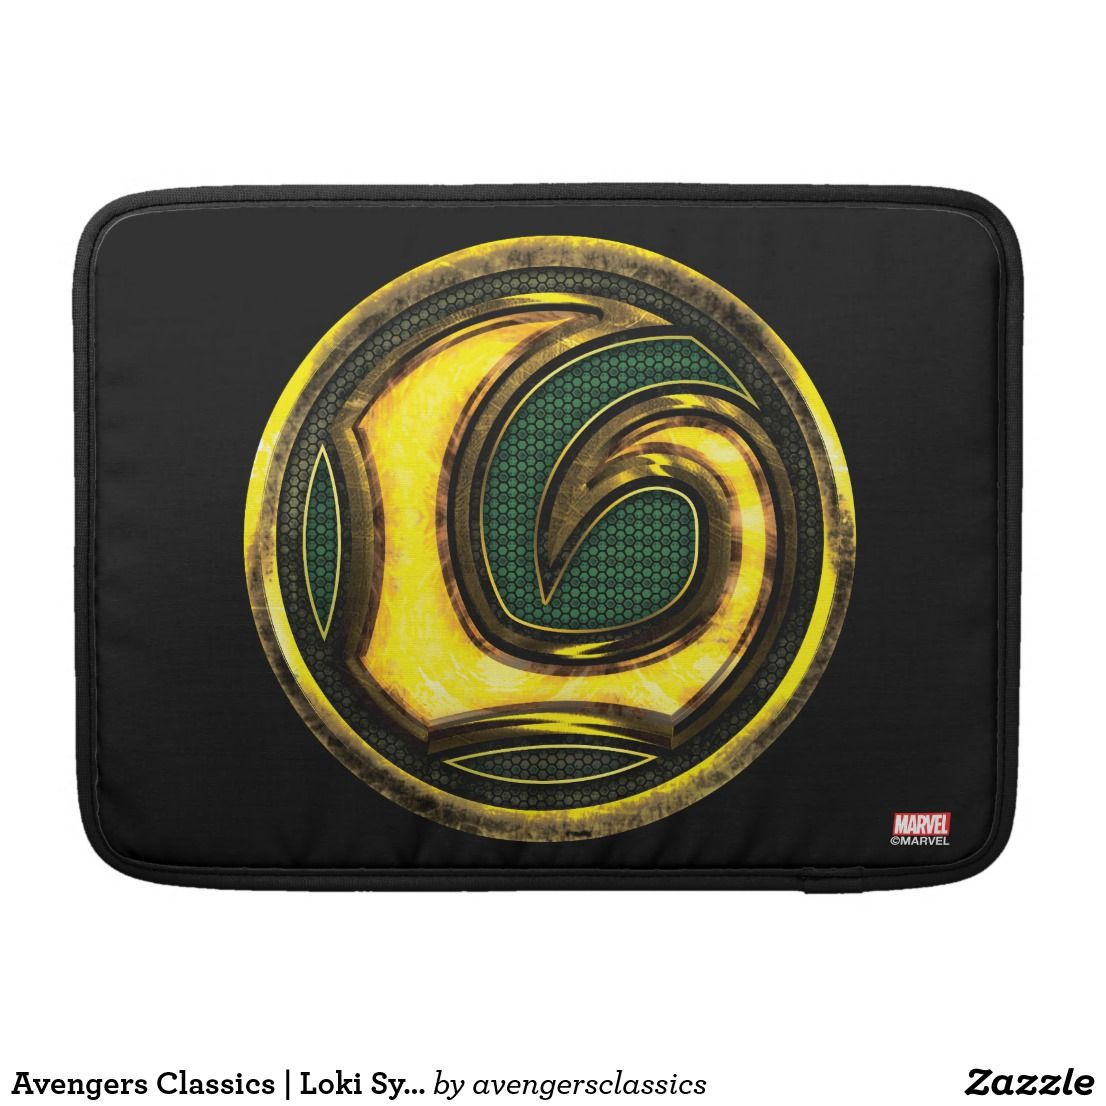 Avengers Classics Loki Symbol Macbook Pro Sleeve Cloth Ideas